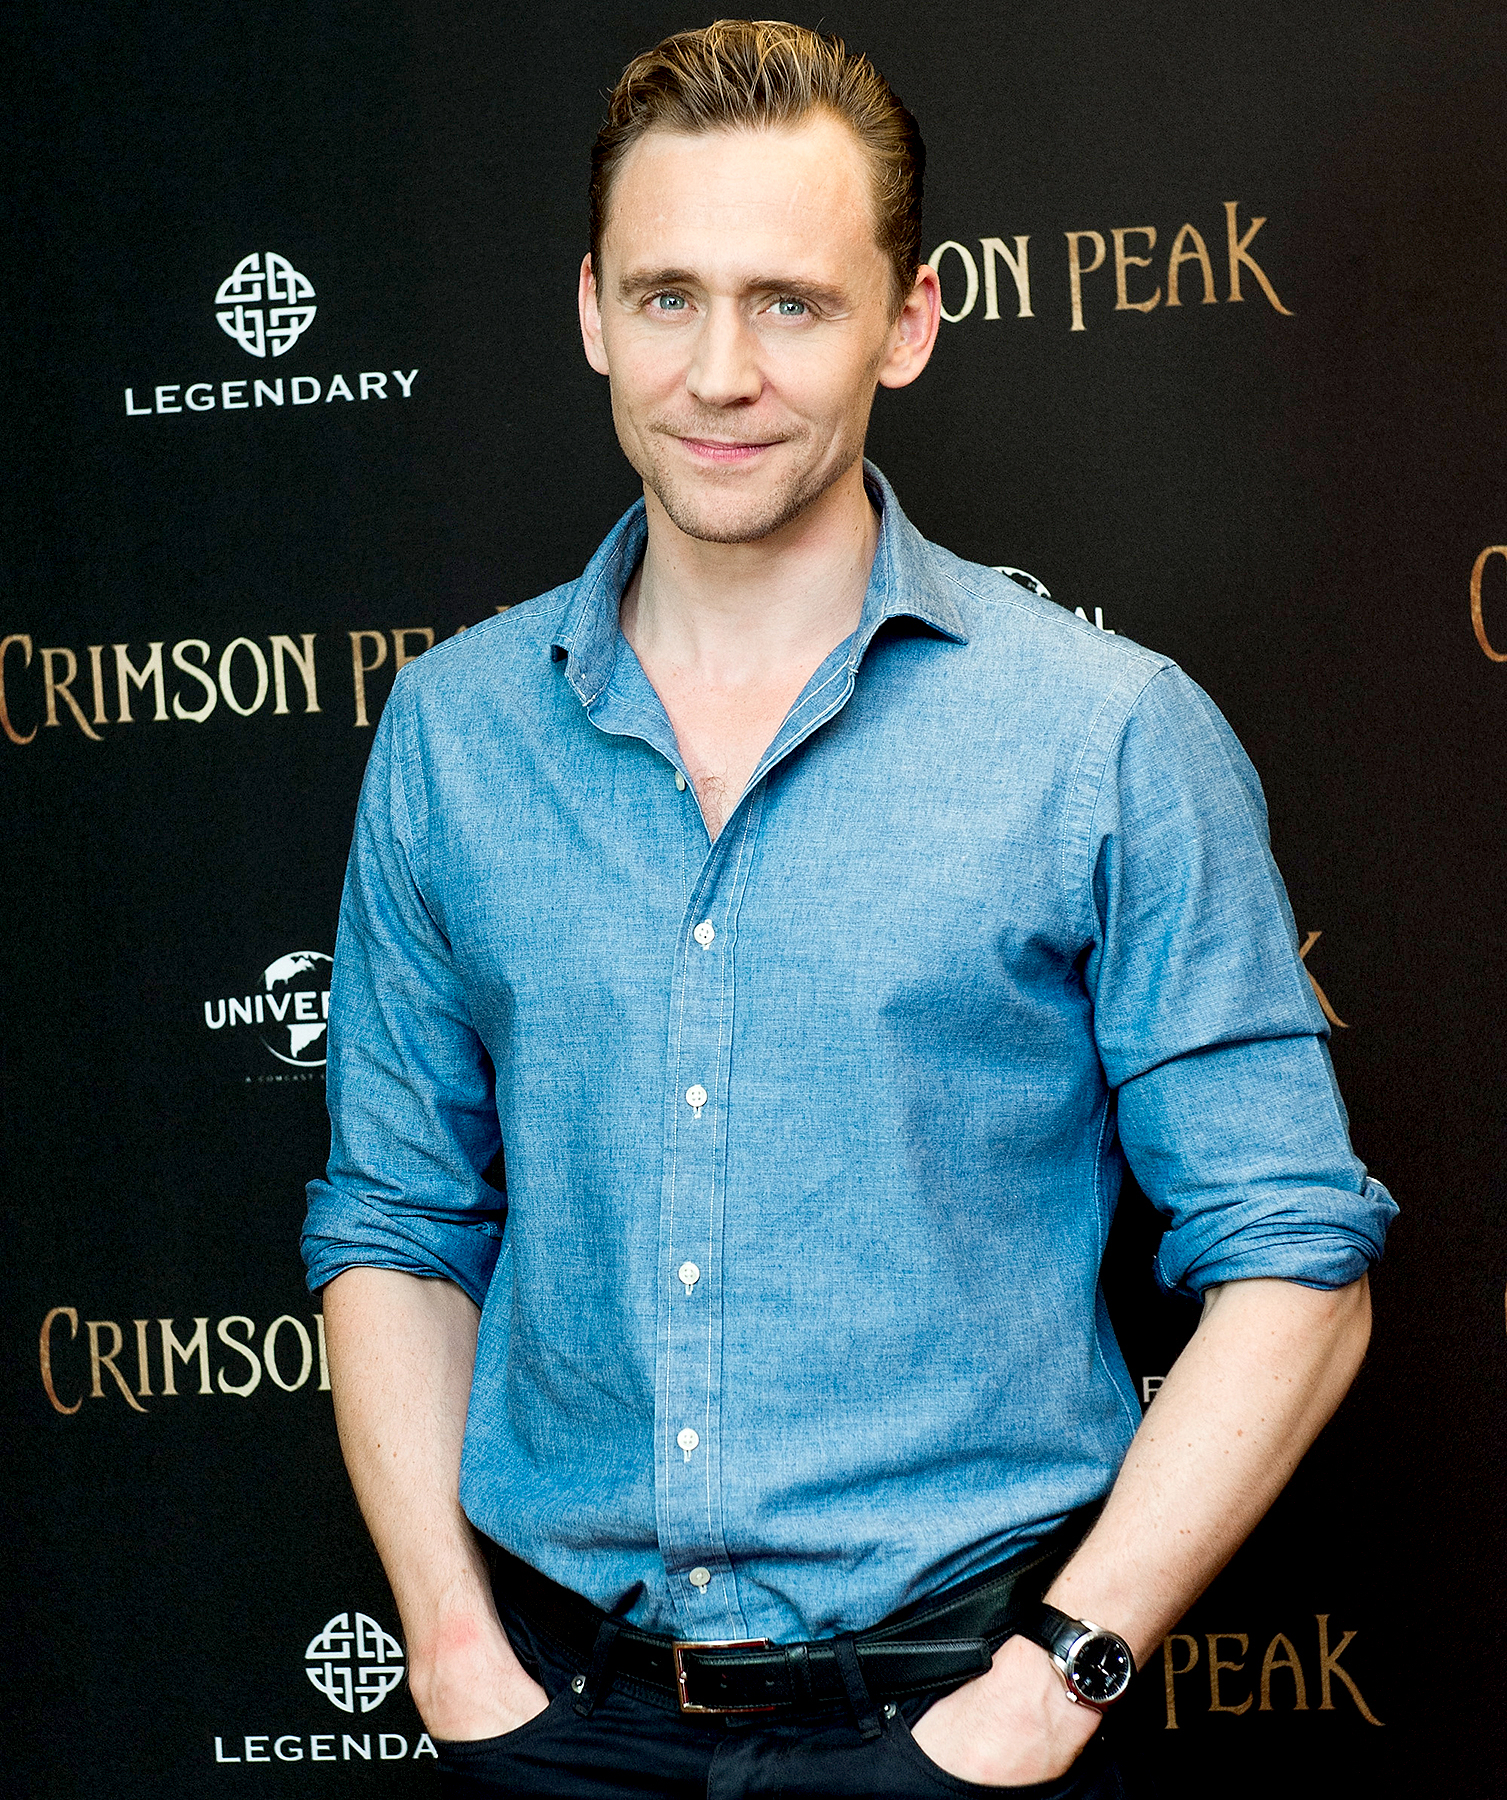 Tom Hiddleston attends the 'Crimson Peak' photo-call at the Regent Hotel on Sept. 30, 2015, in Berlin.